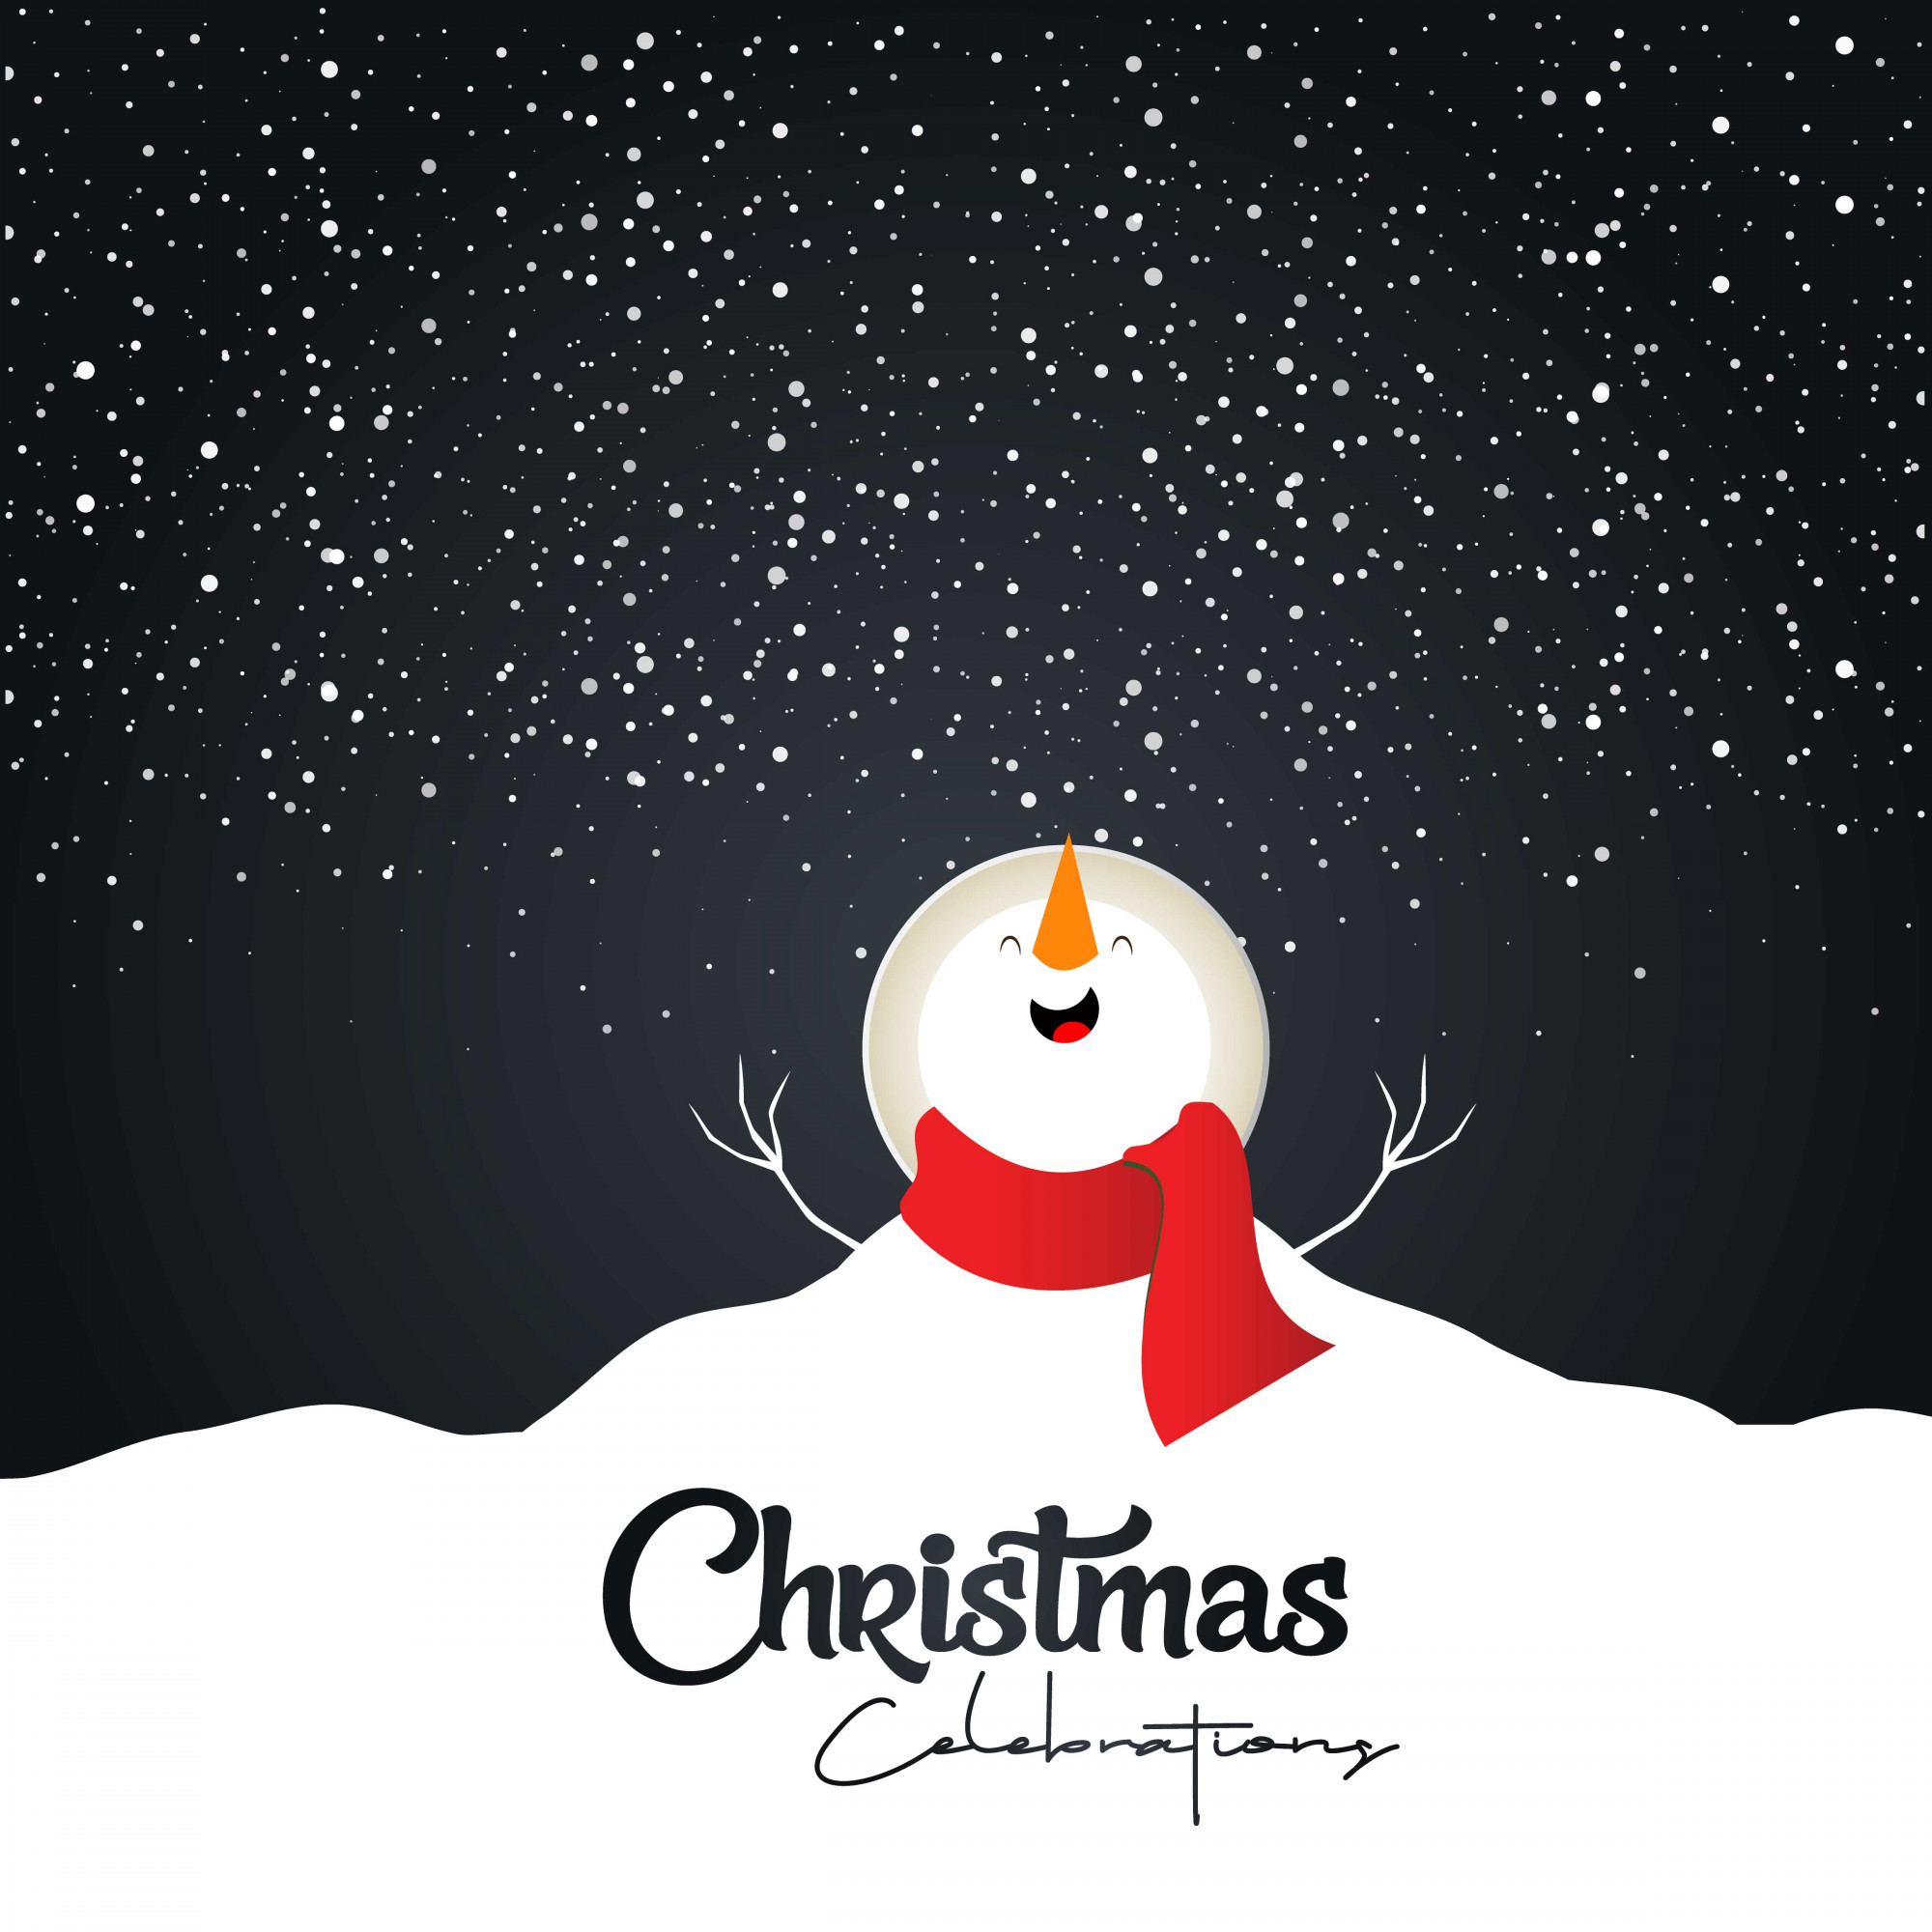 Merry Christmas card with dark background